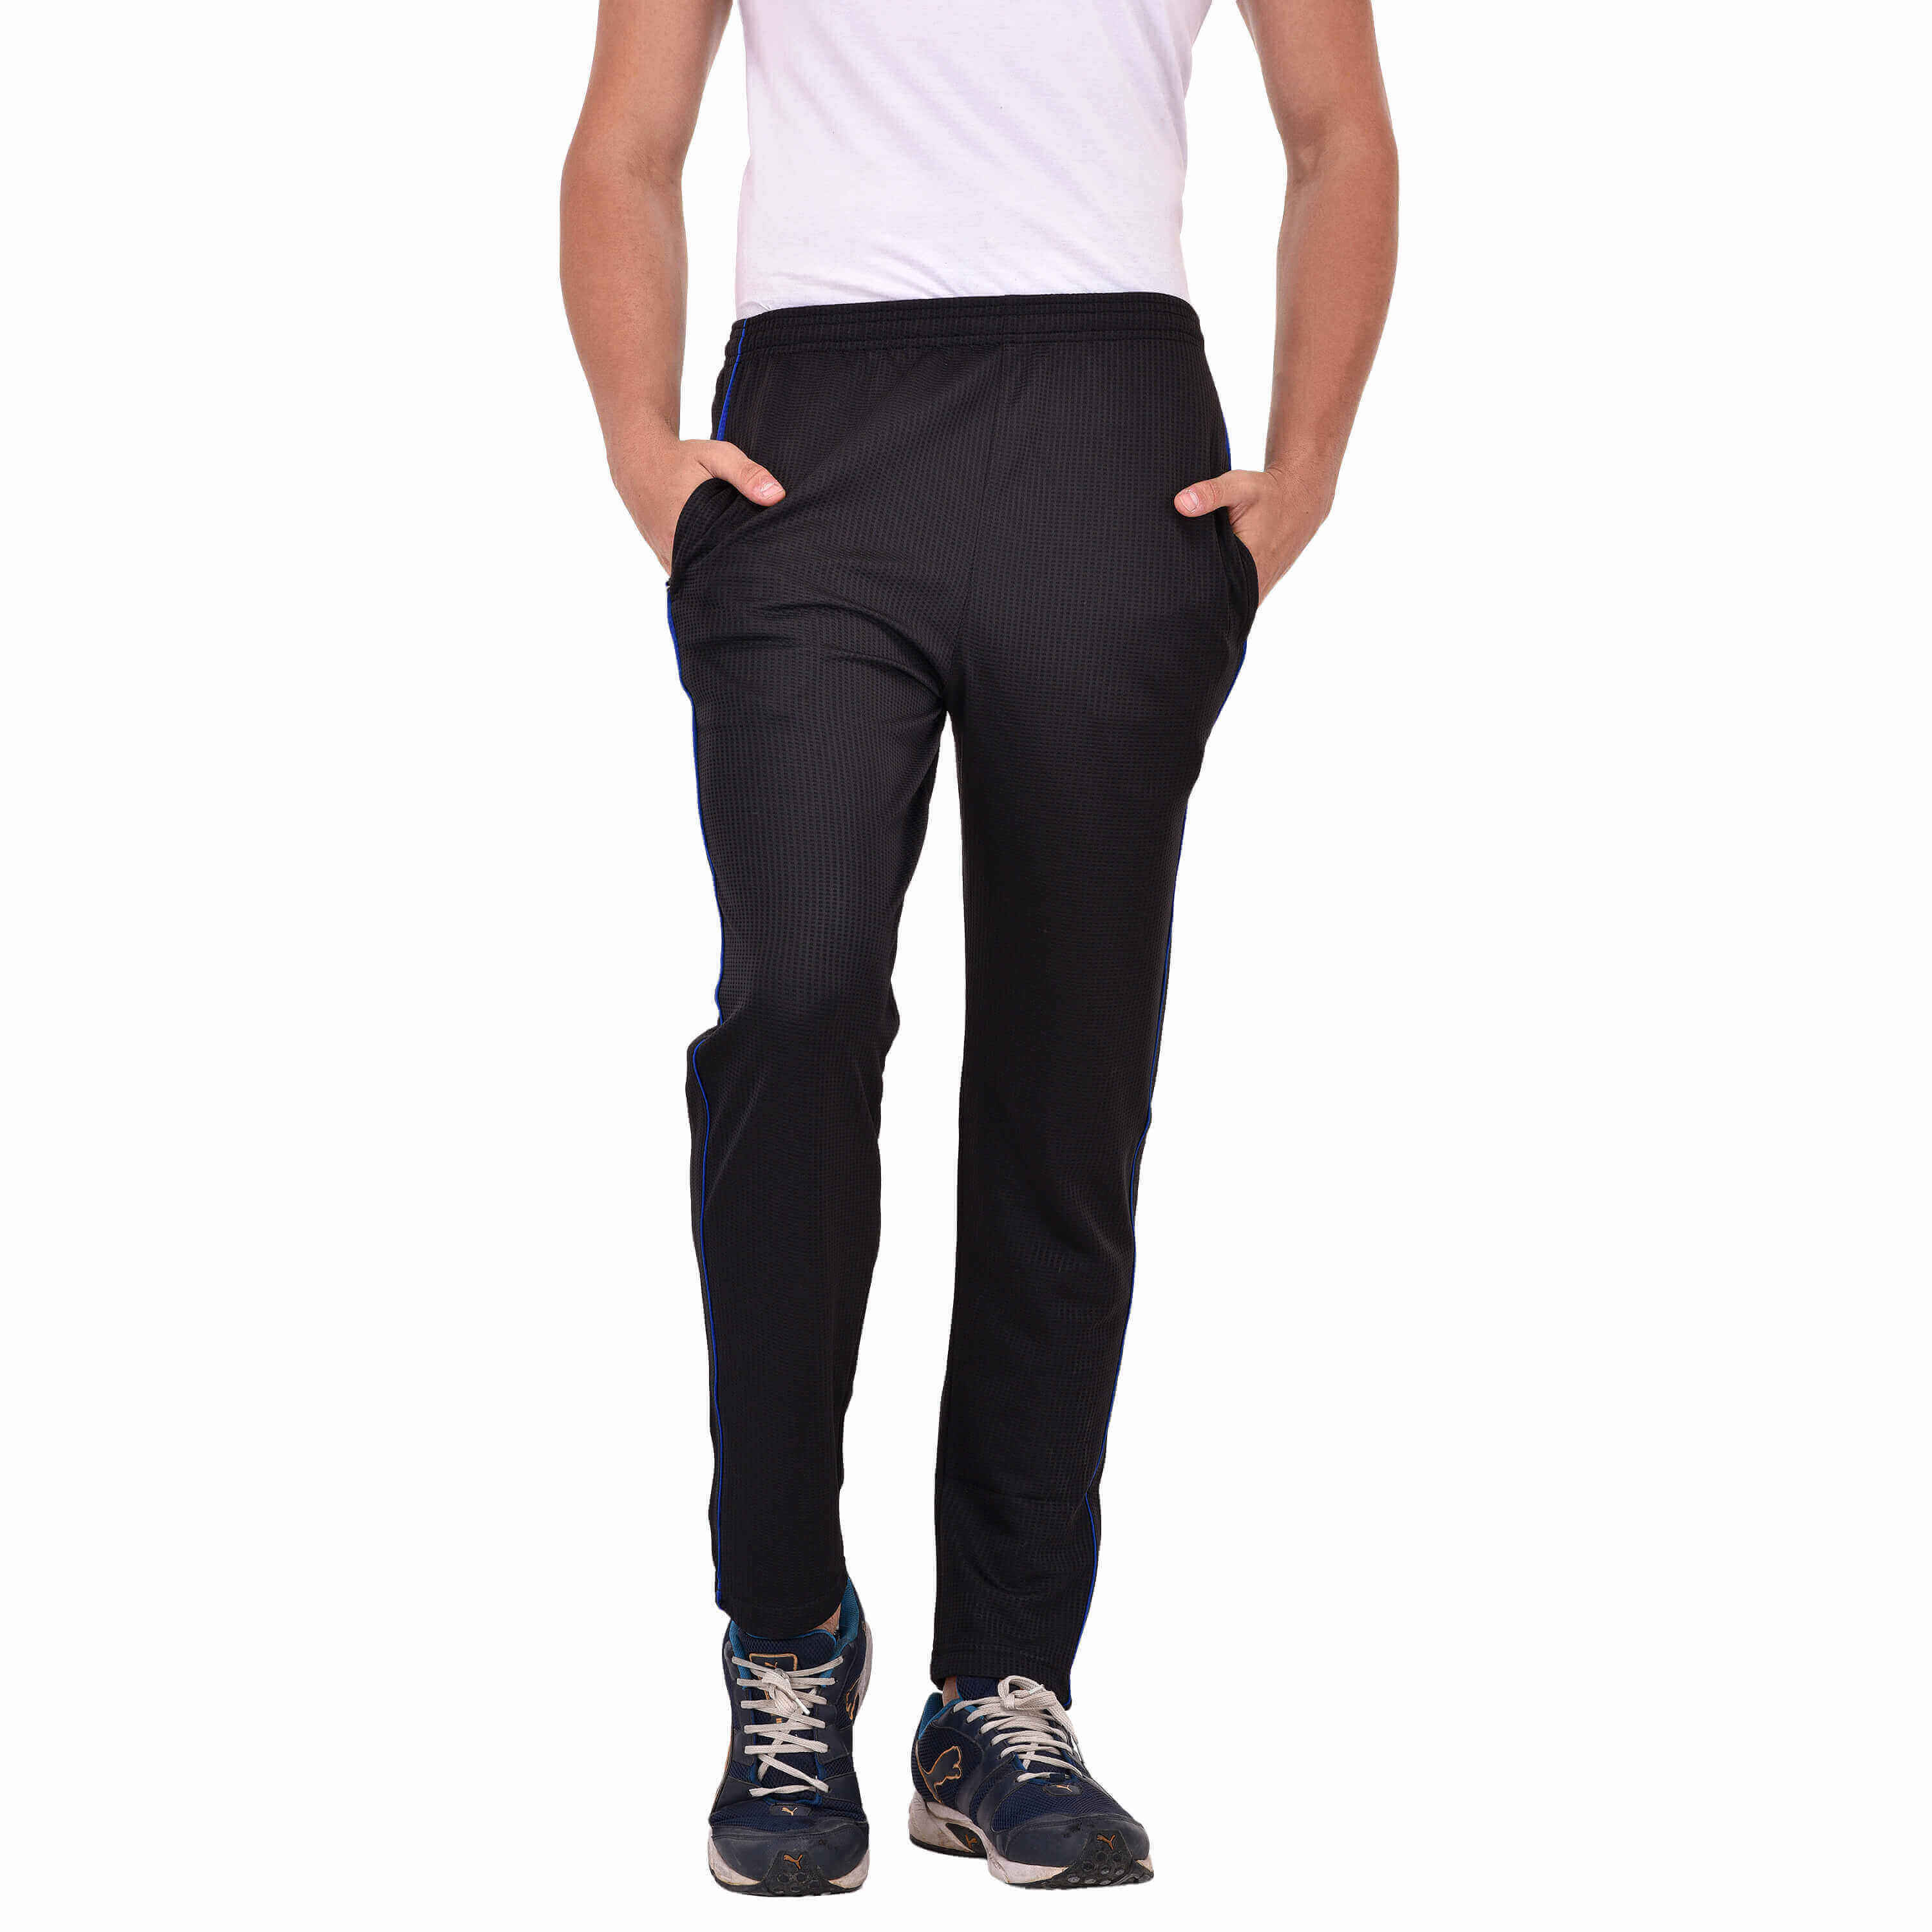 Mens Tracksuit Bottoms Manufacturers in Bolivia